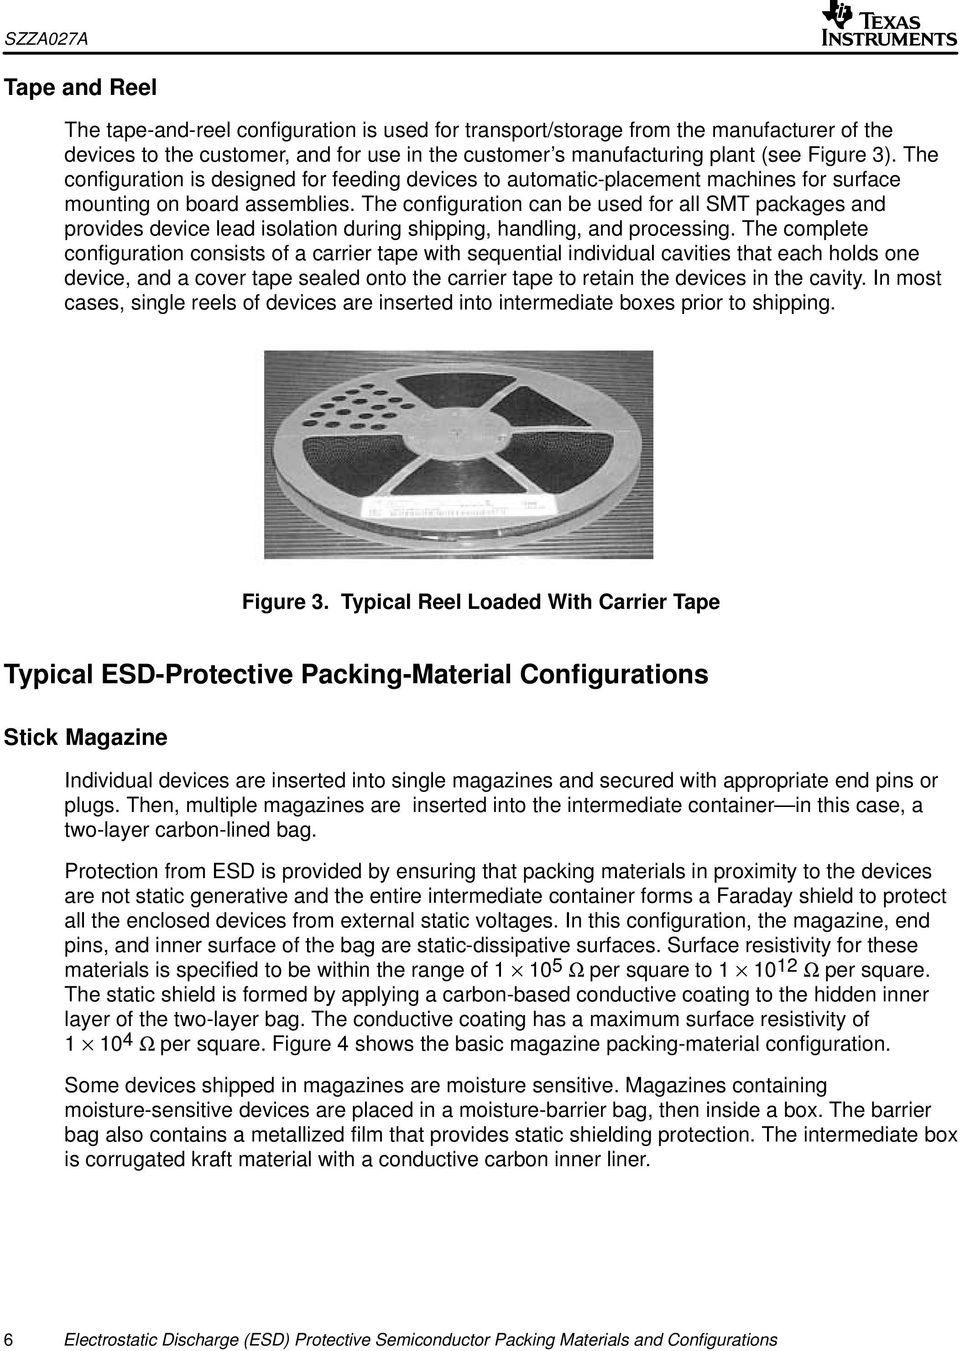 Electrostatic Discharge (ESD) Protective Semiconductor